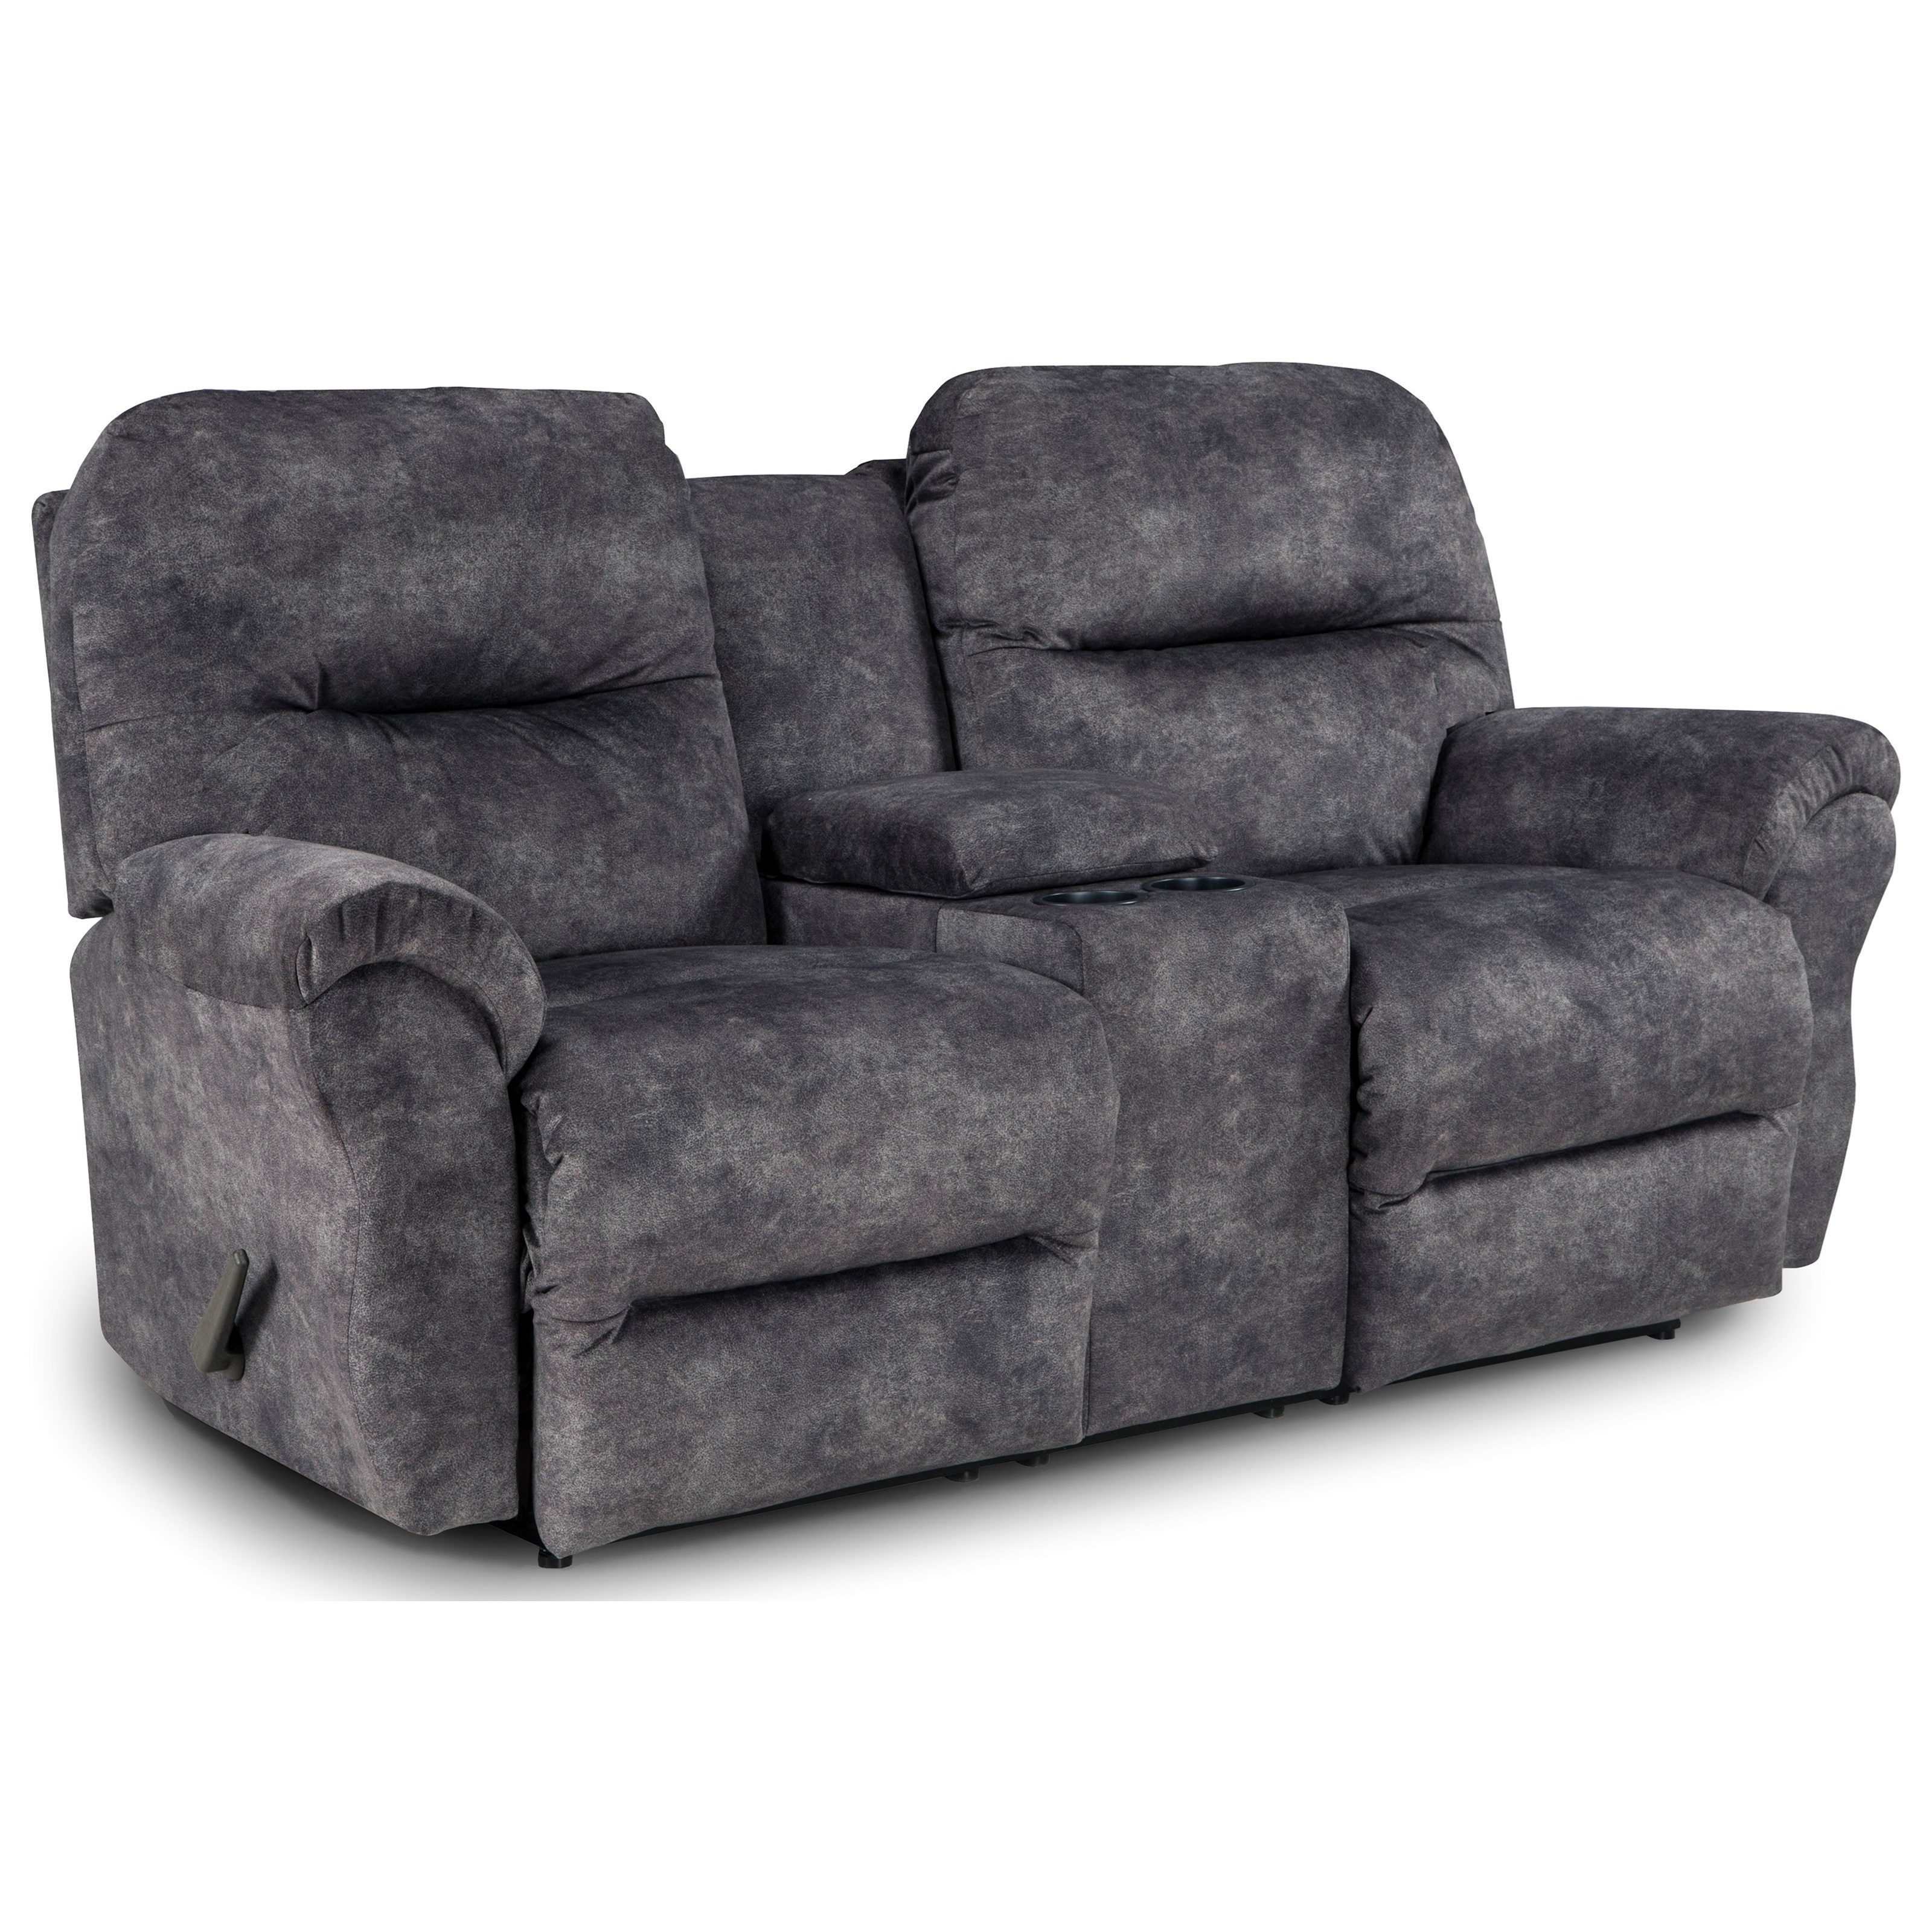 Bodie Rocking Reclining Loveseat w/ Console by Best Home Furnishings at Baer's Furniture